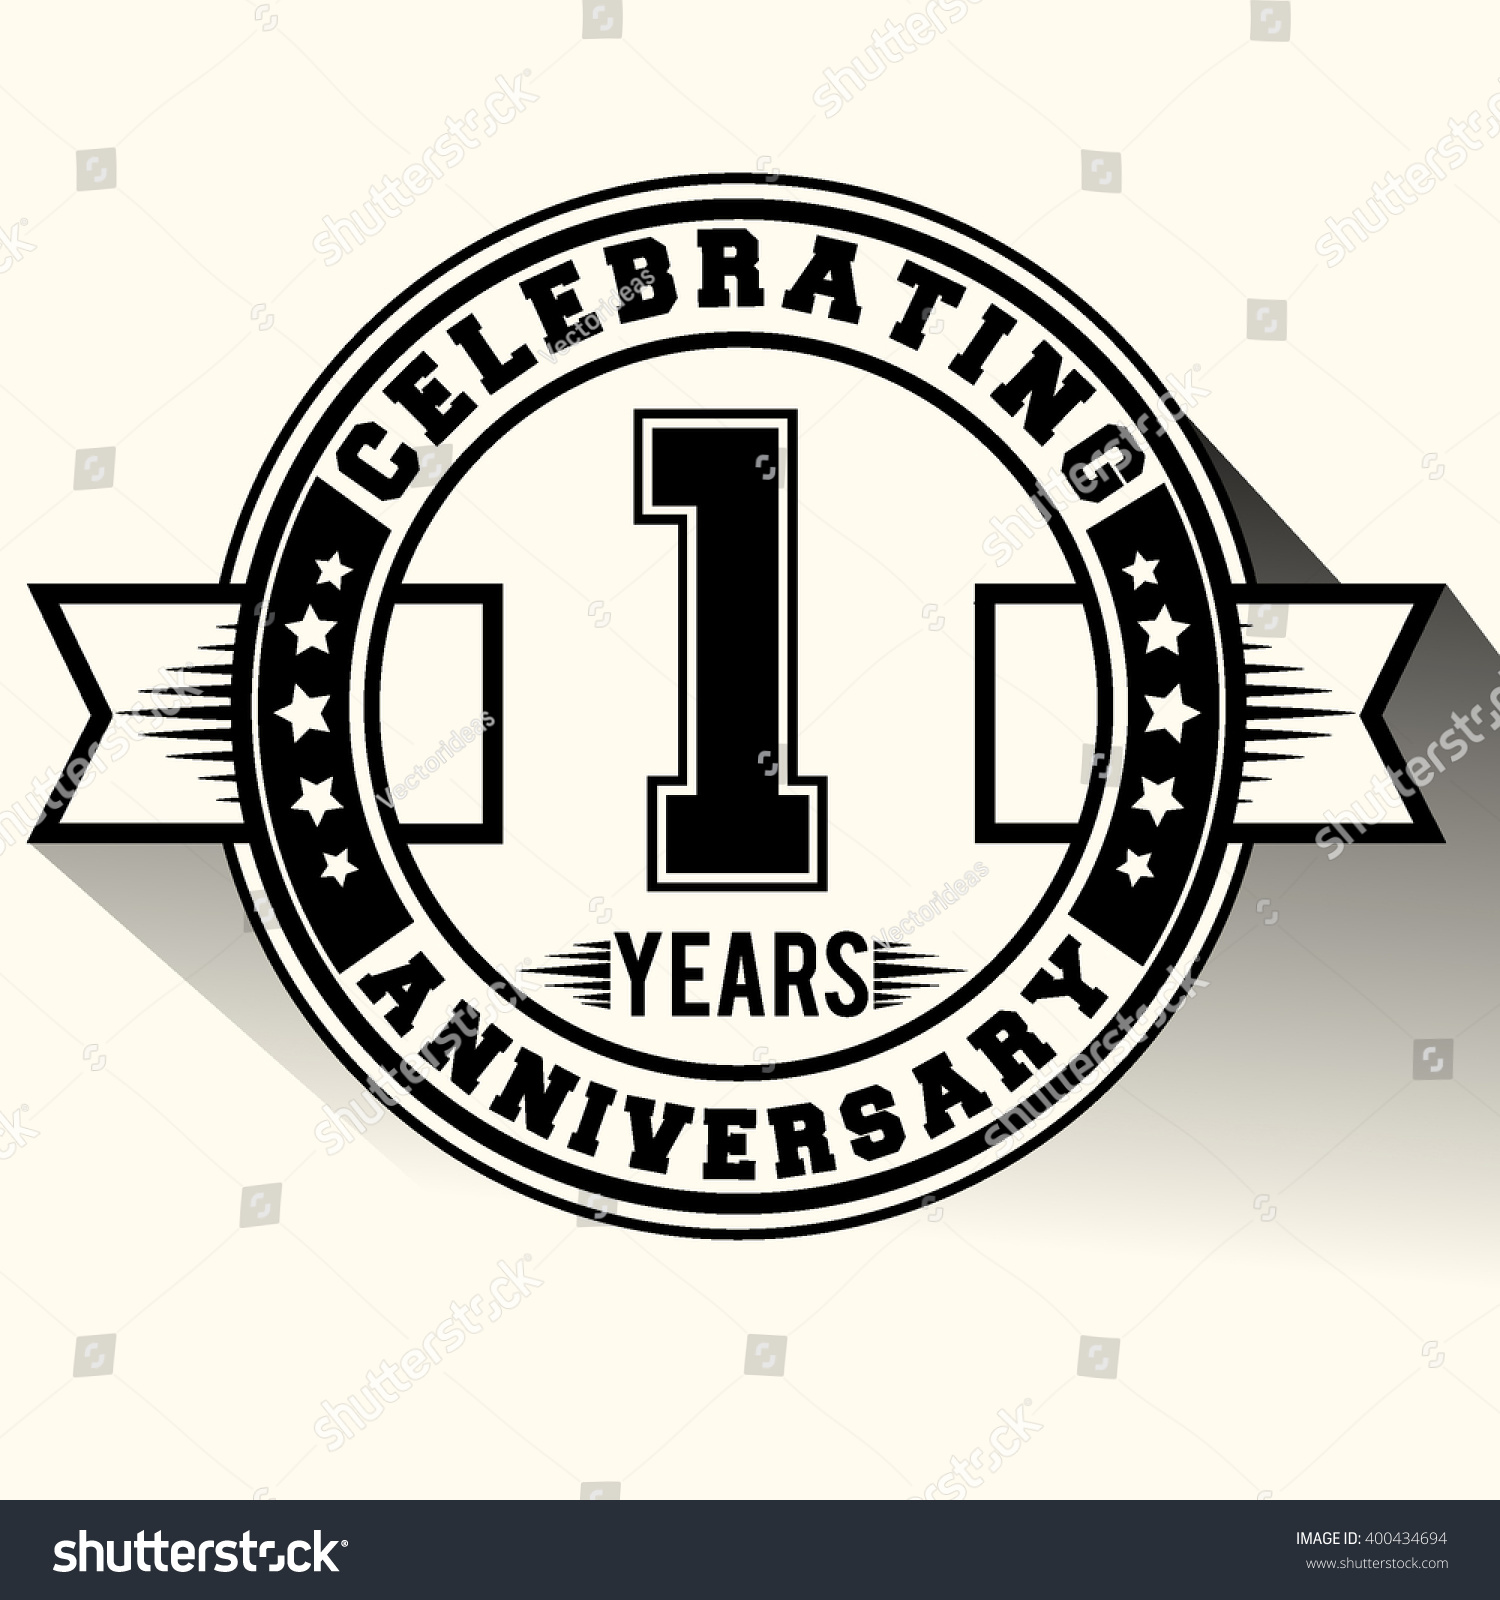 Celebrating years anniversary logo st